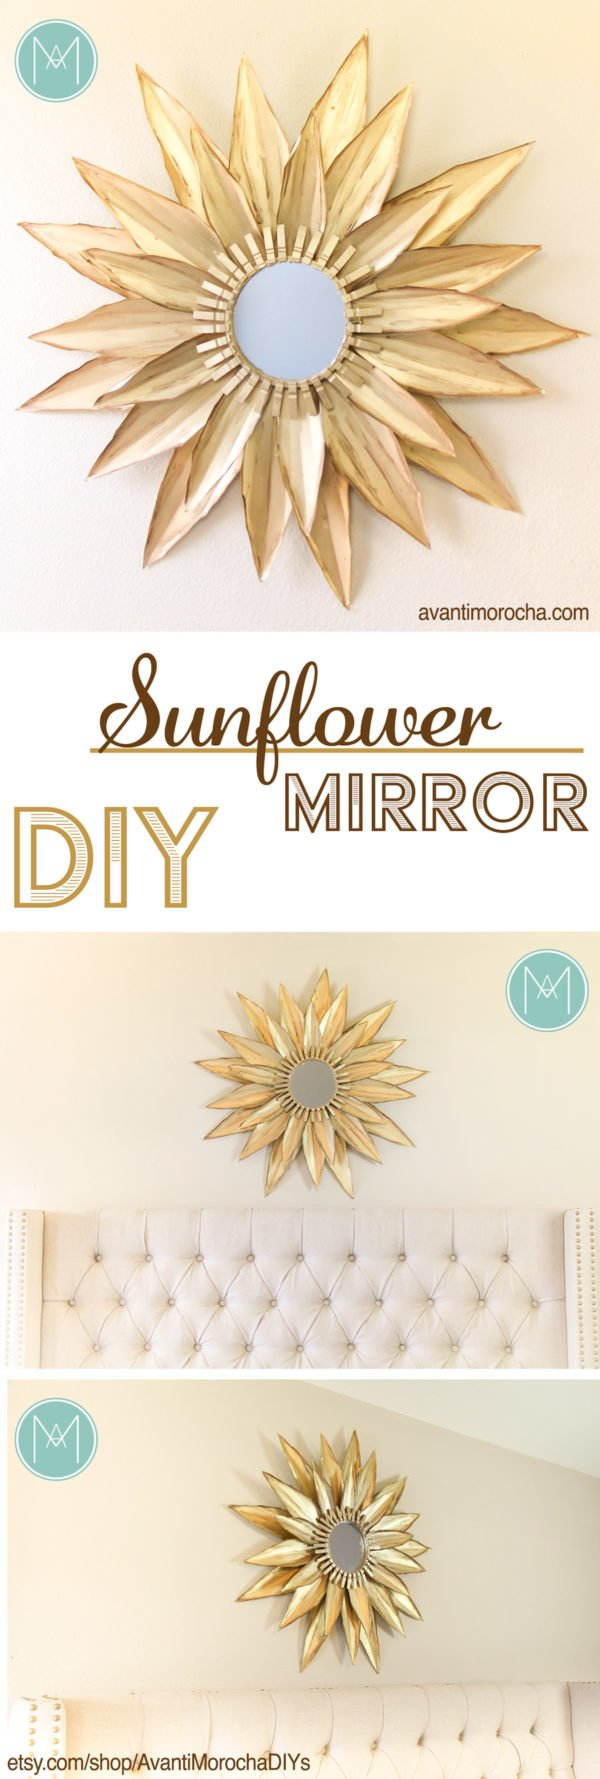 50 Fab DIY Mirror Frames You Can Easily Make Yourself - How to make a DIY sunflower mirror #DIY #homedecor